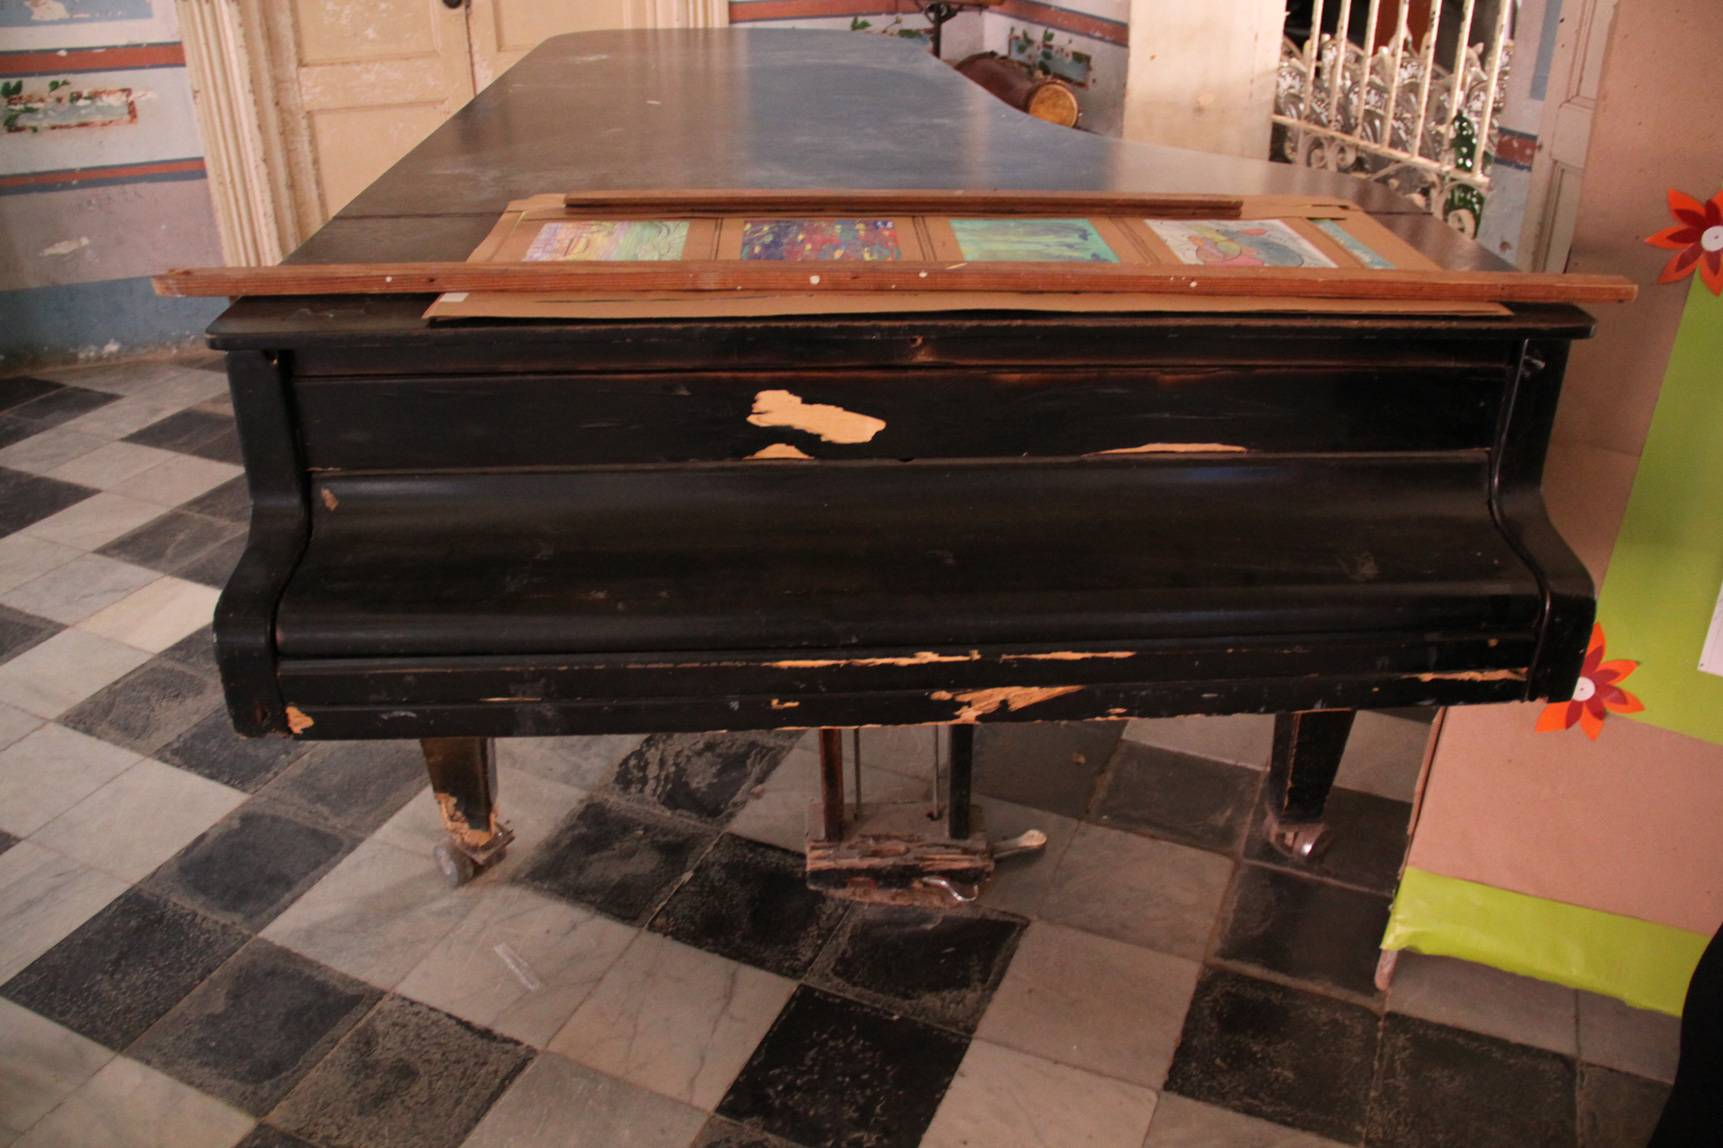 Grand piano in Trinidad, Cuba